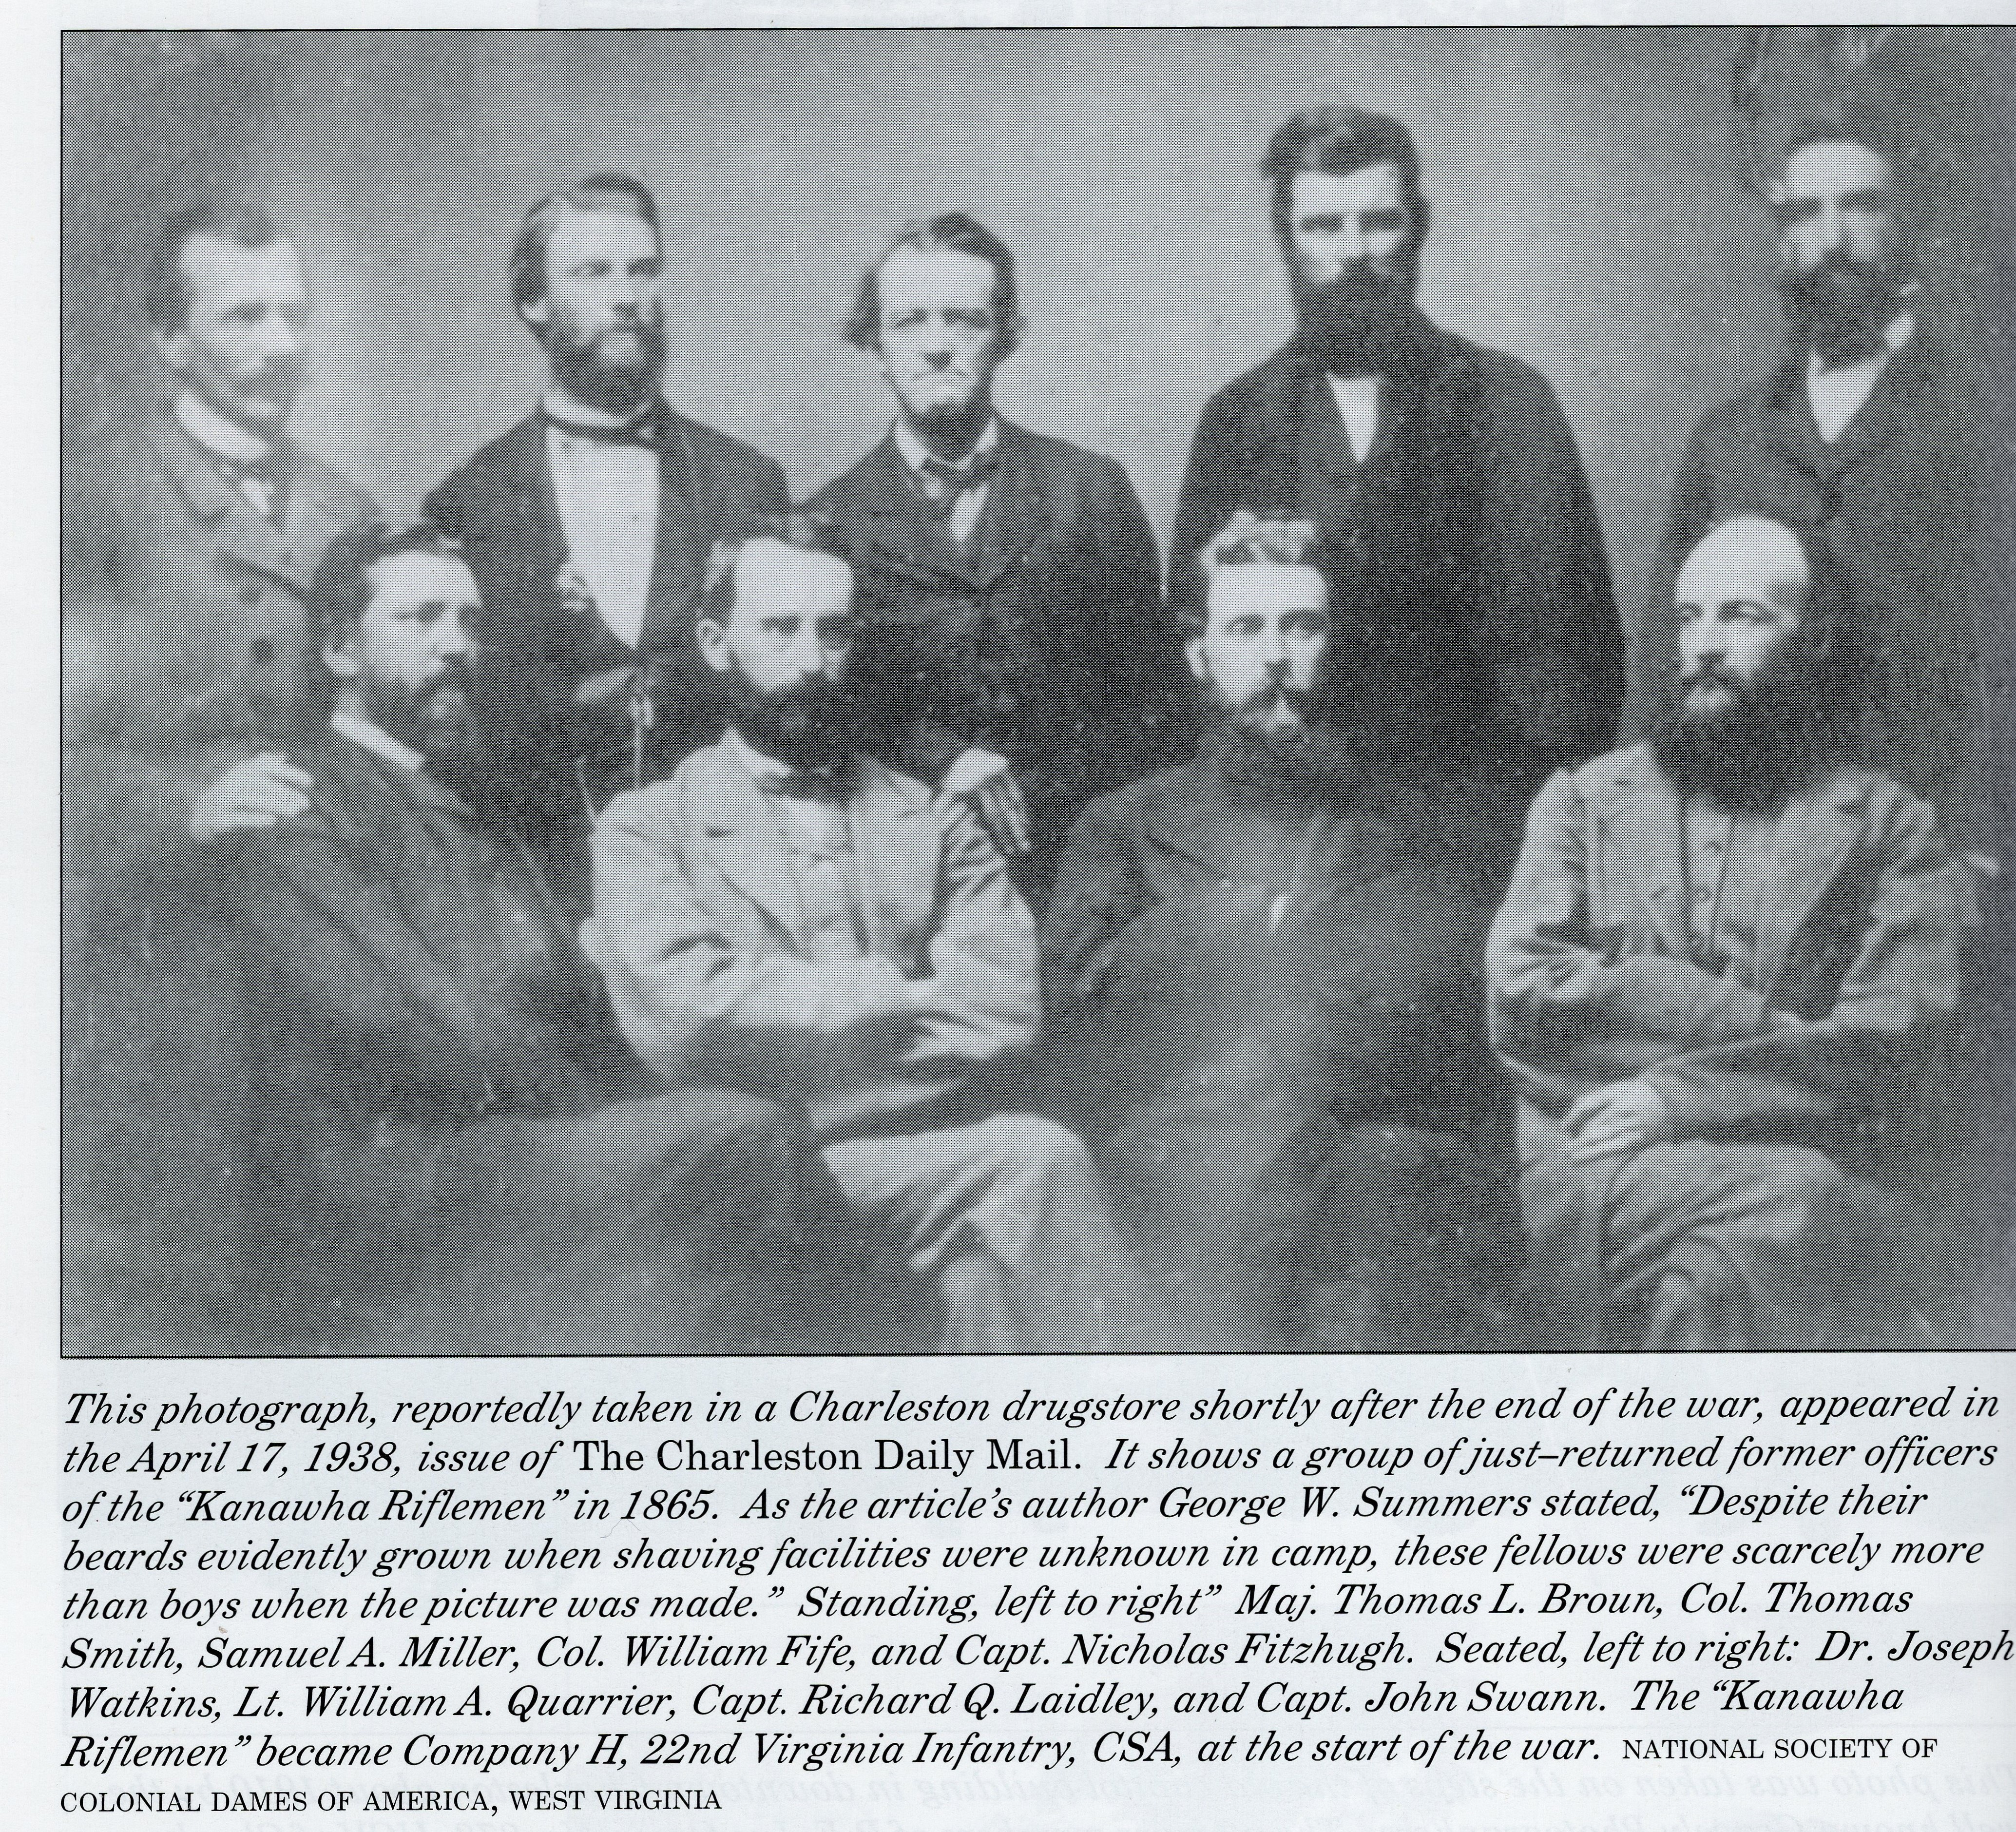 Officers of the Kanawha Riflemen at the end of the war.